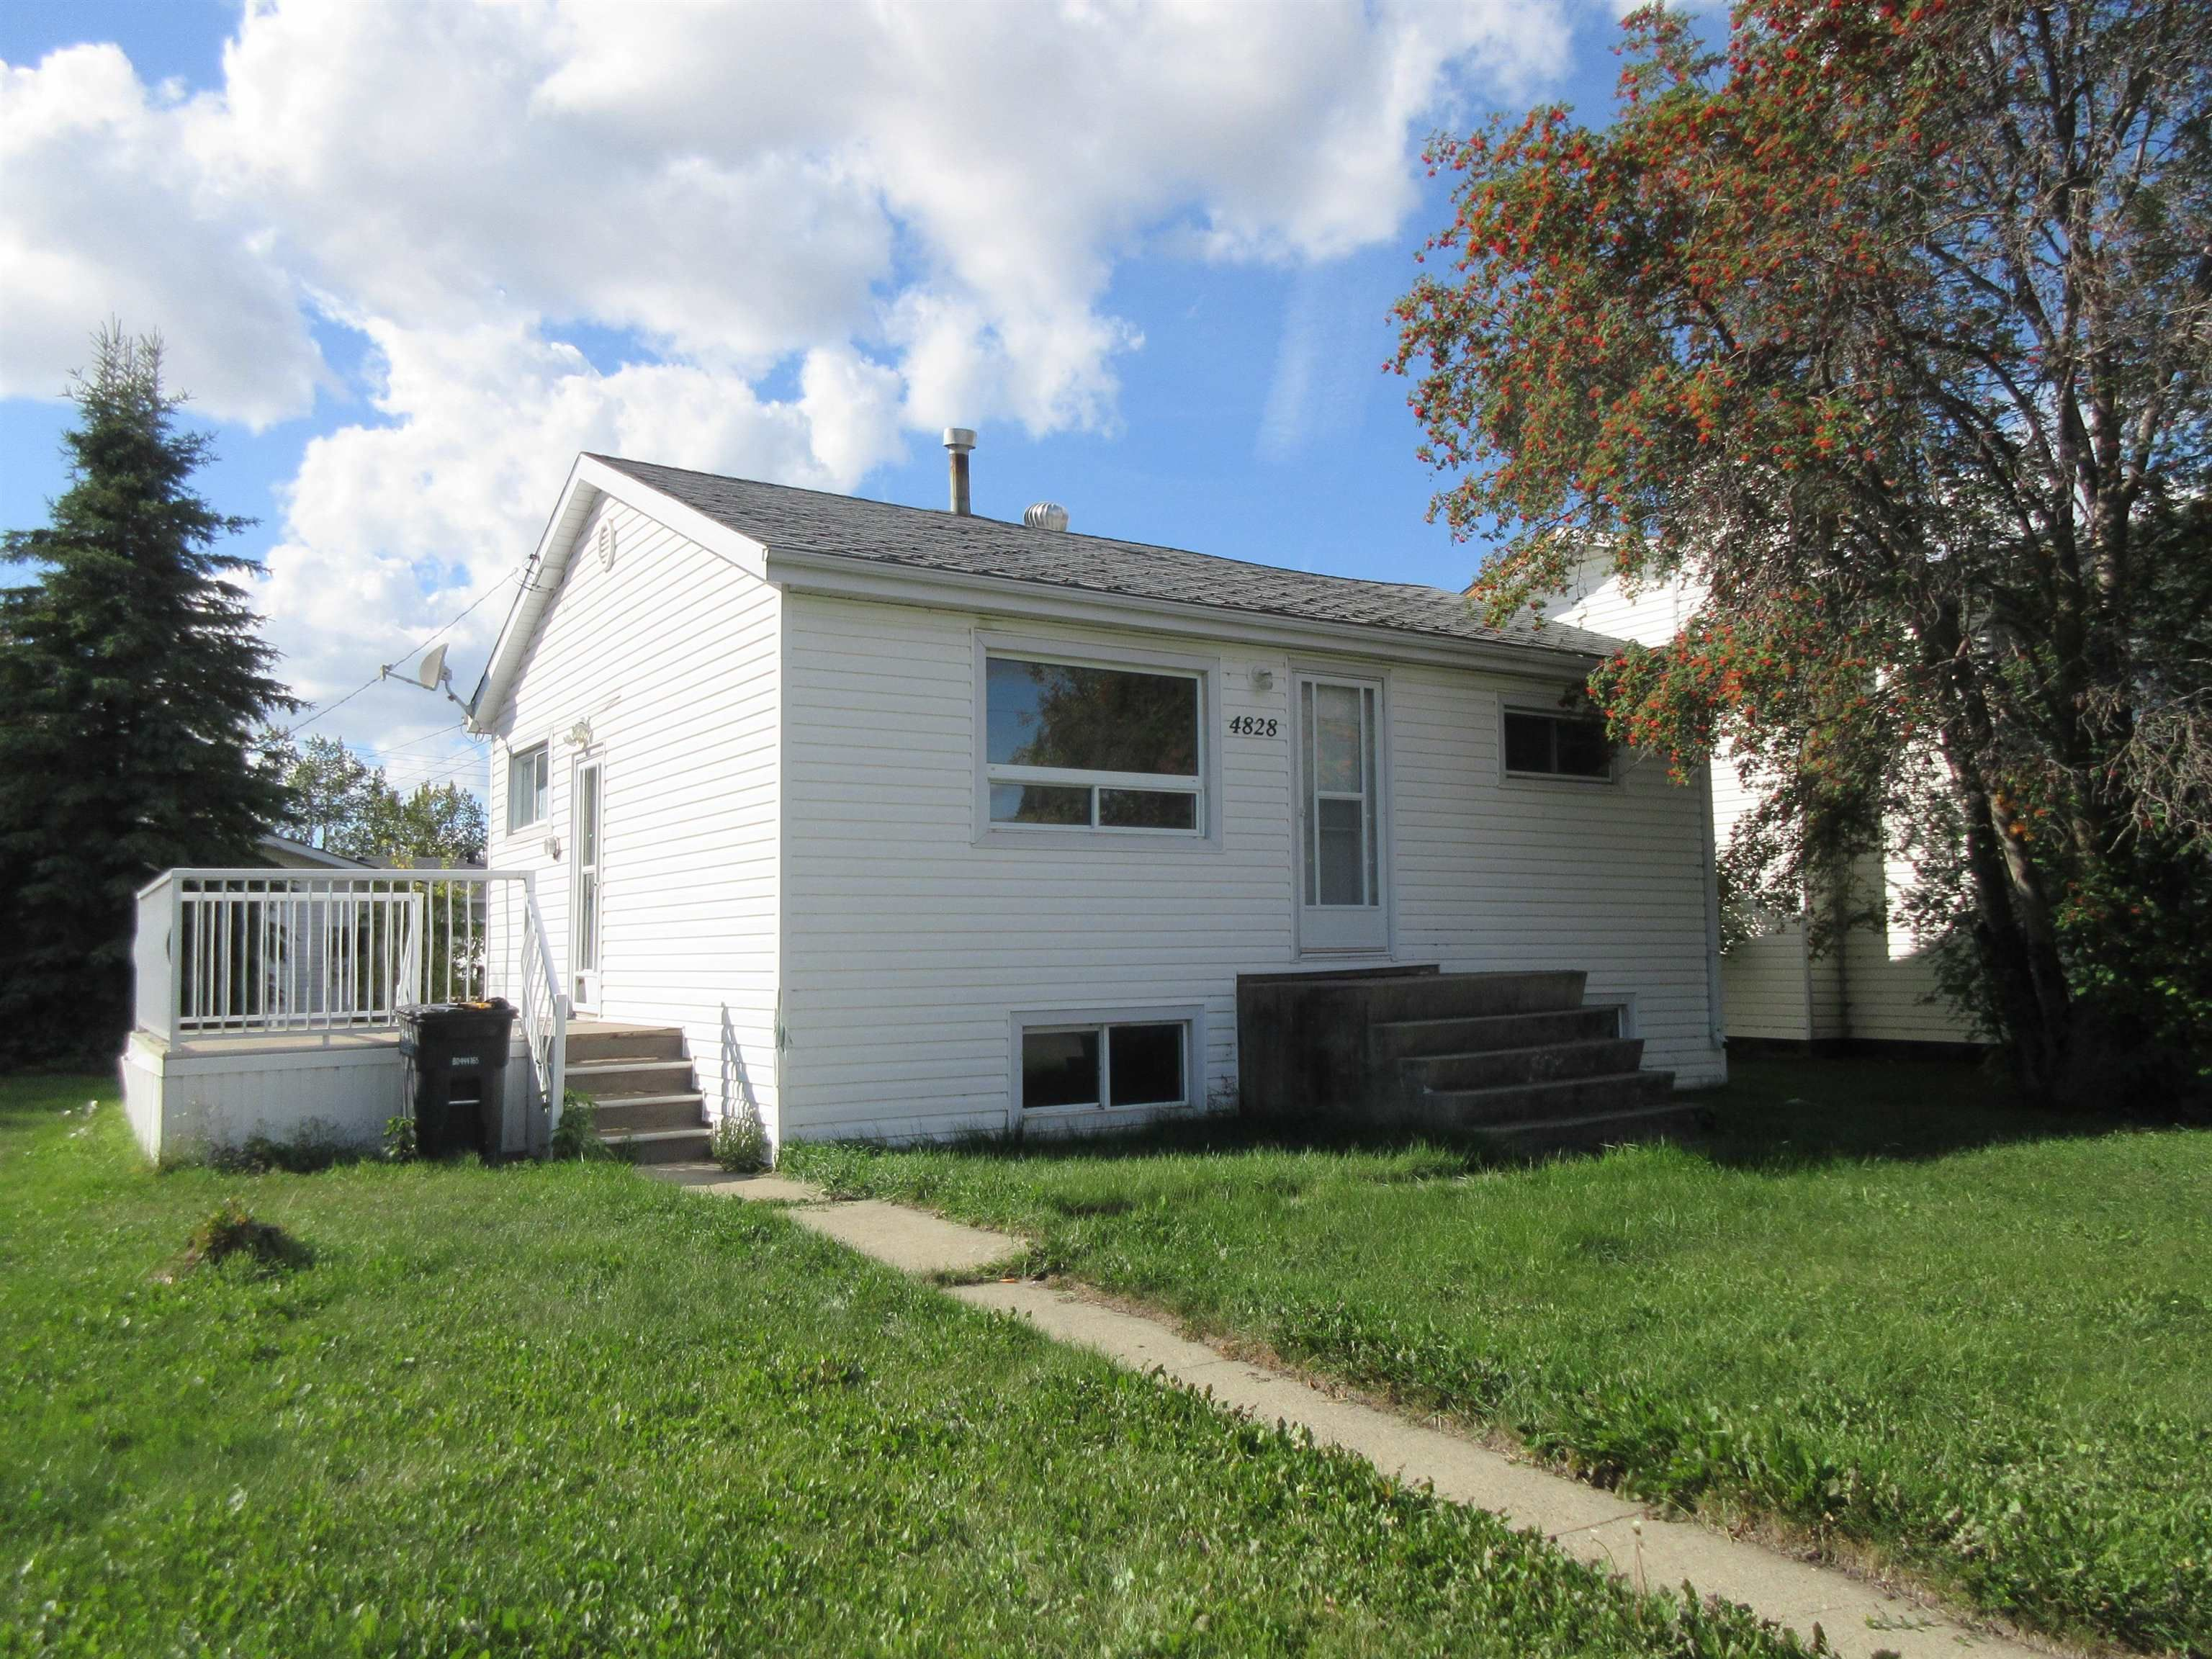 Main Photo: 4828 54 Street: Redwater House for sale : MLS®# E4262434